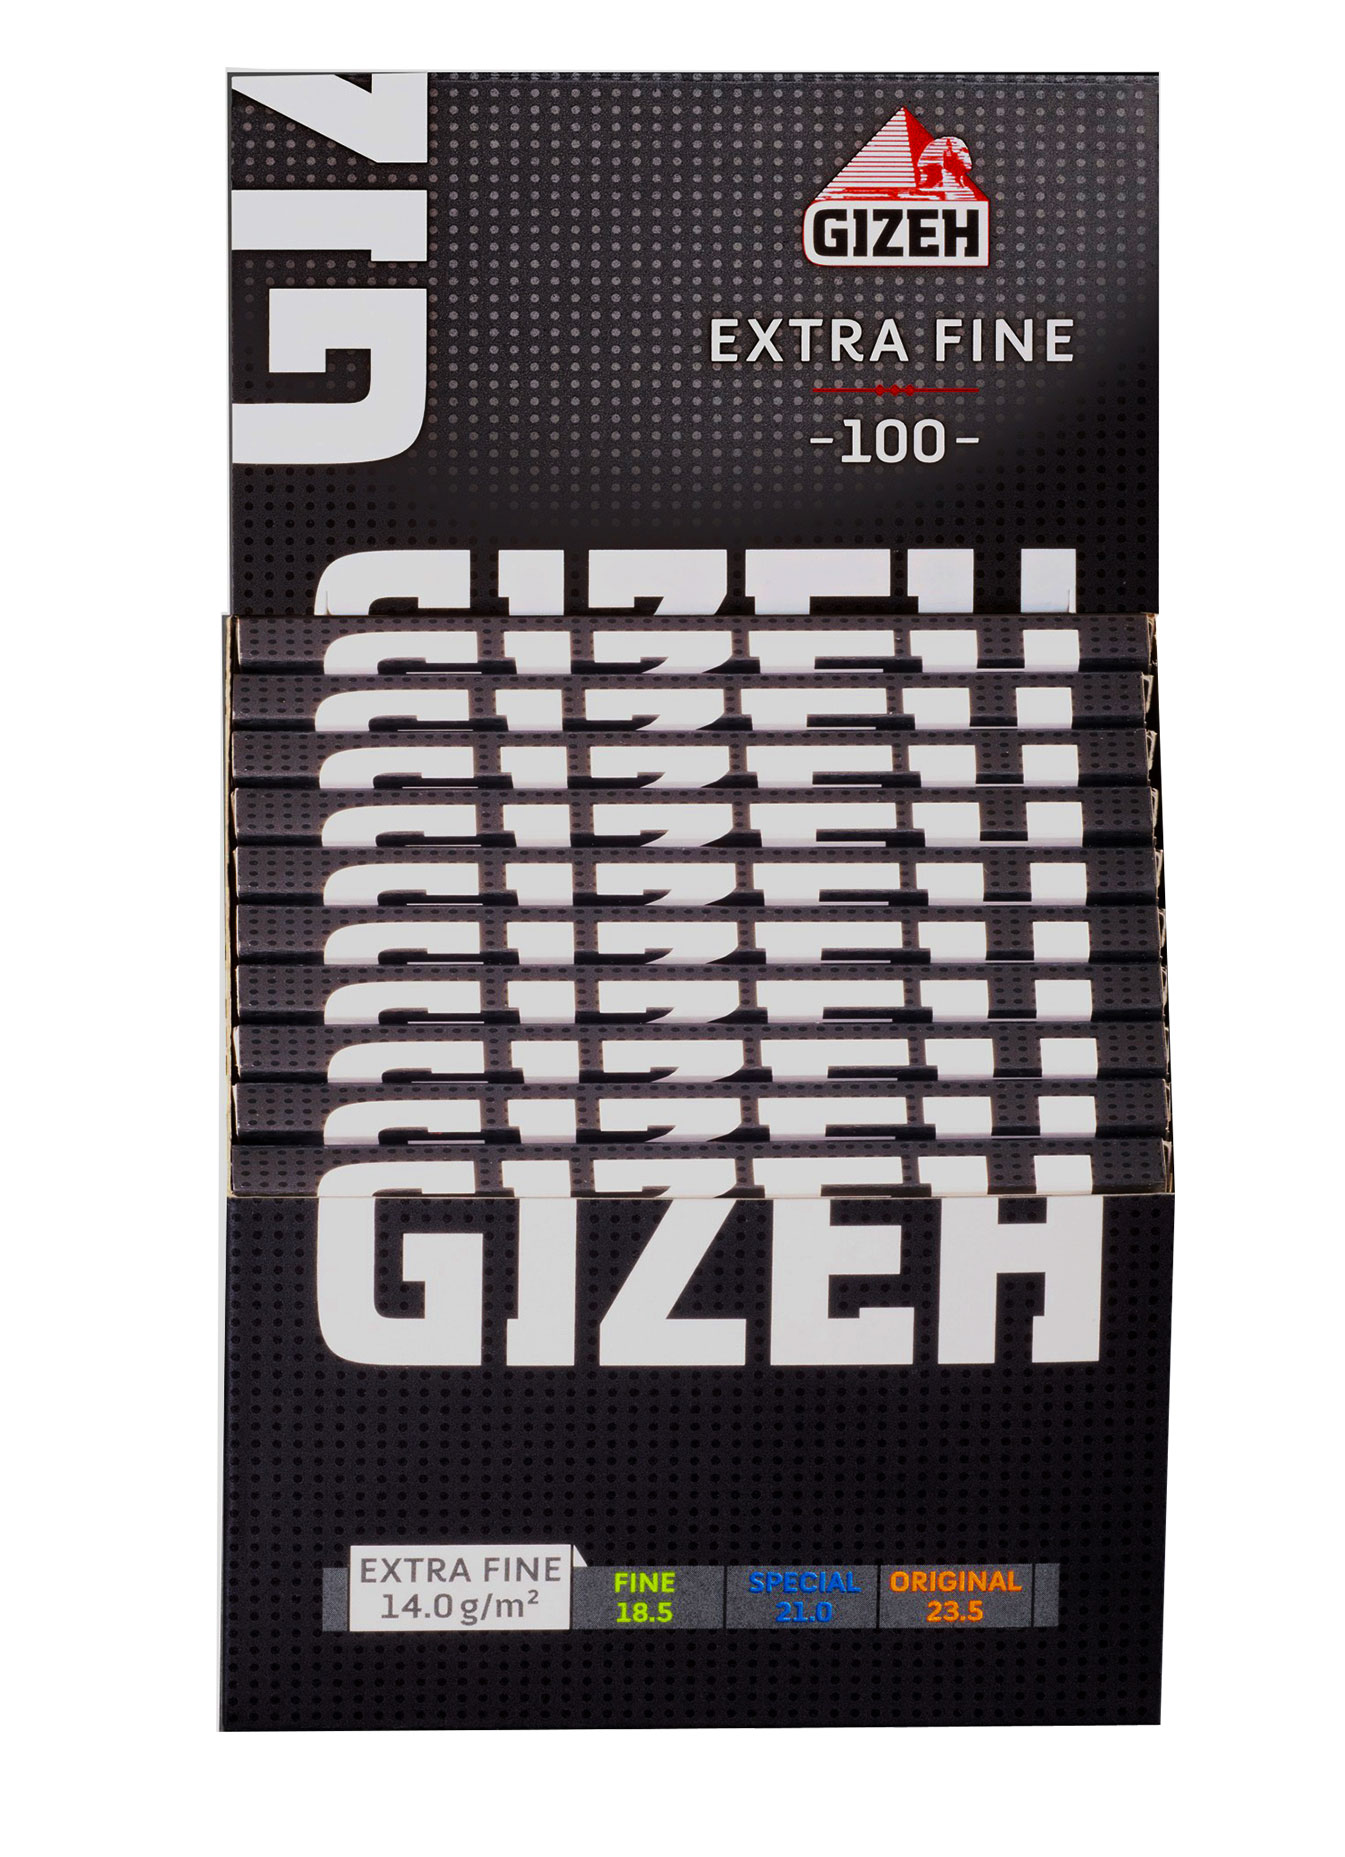 Gizeh Black Extra Fine Regular Size